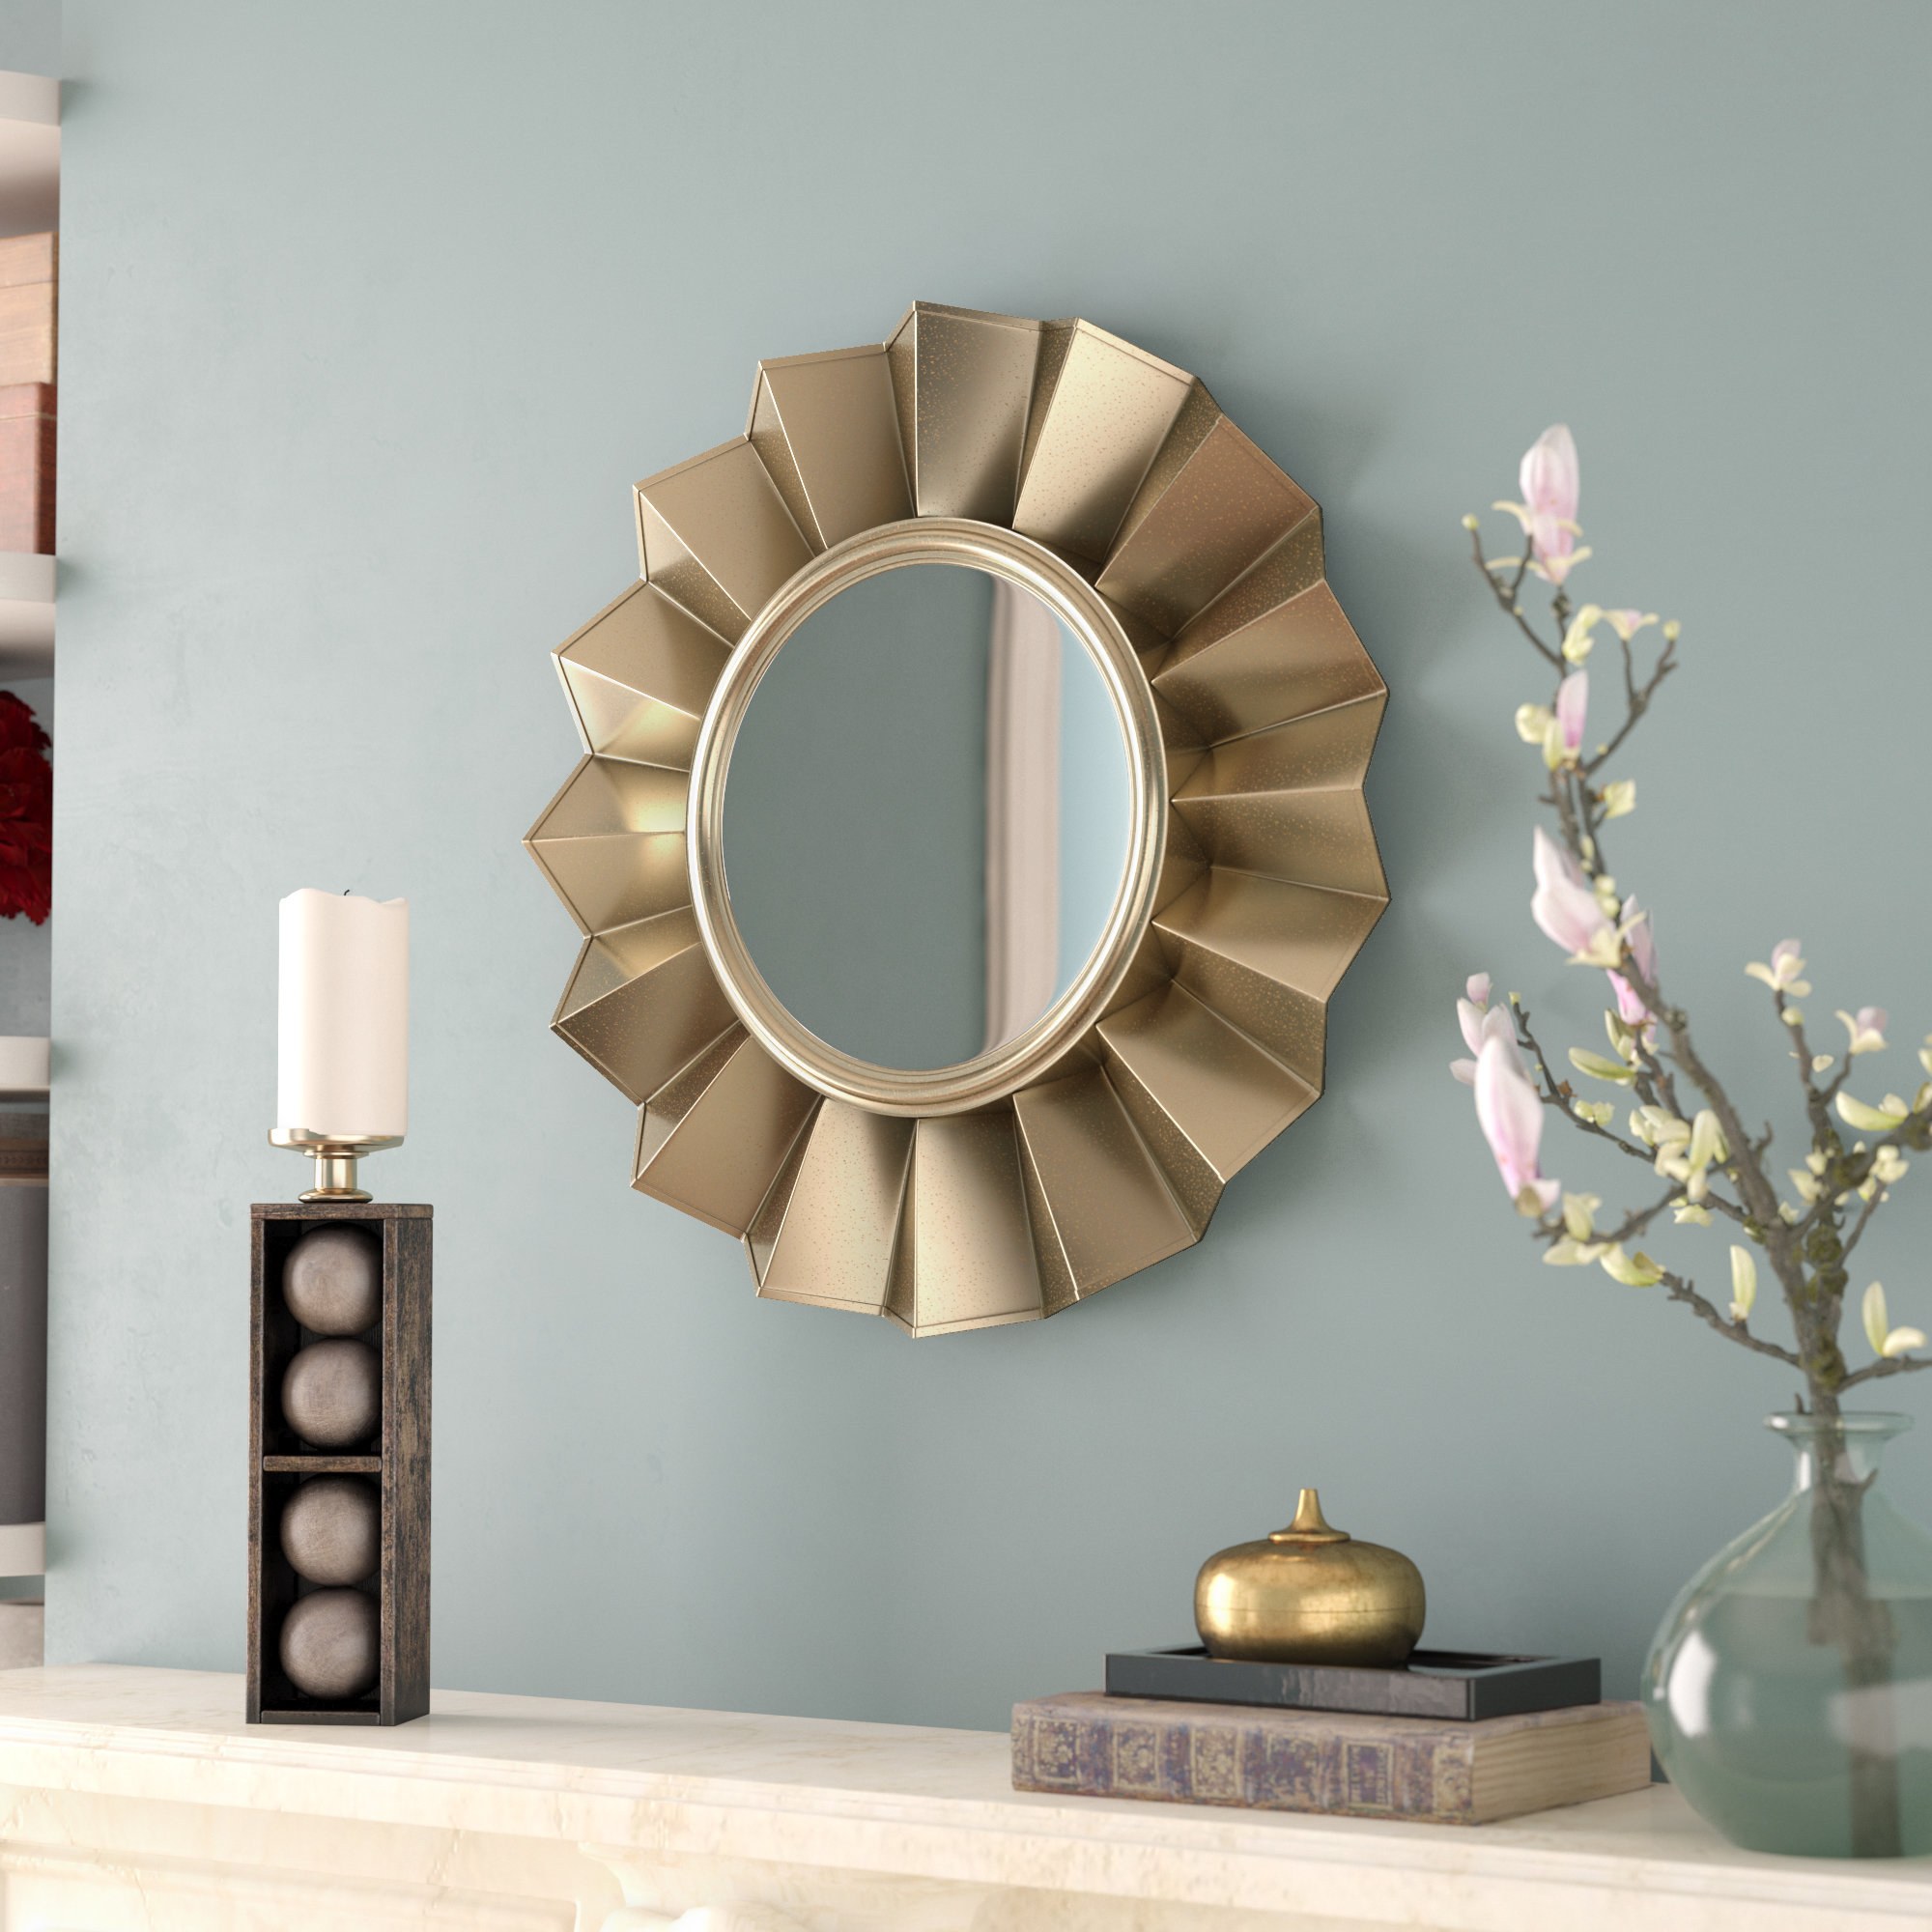 Fashionable Starburst Wall Decor By Willa Arlo Interiors Throughout Willa Arlo Interiors Vertical Round Wall Mirror & Reviews (View 3 of 20)